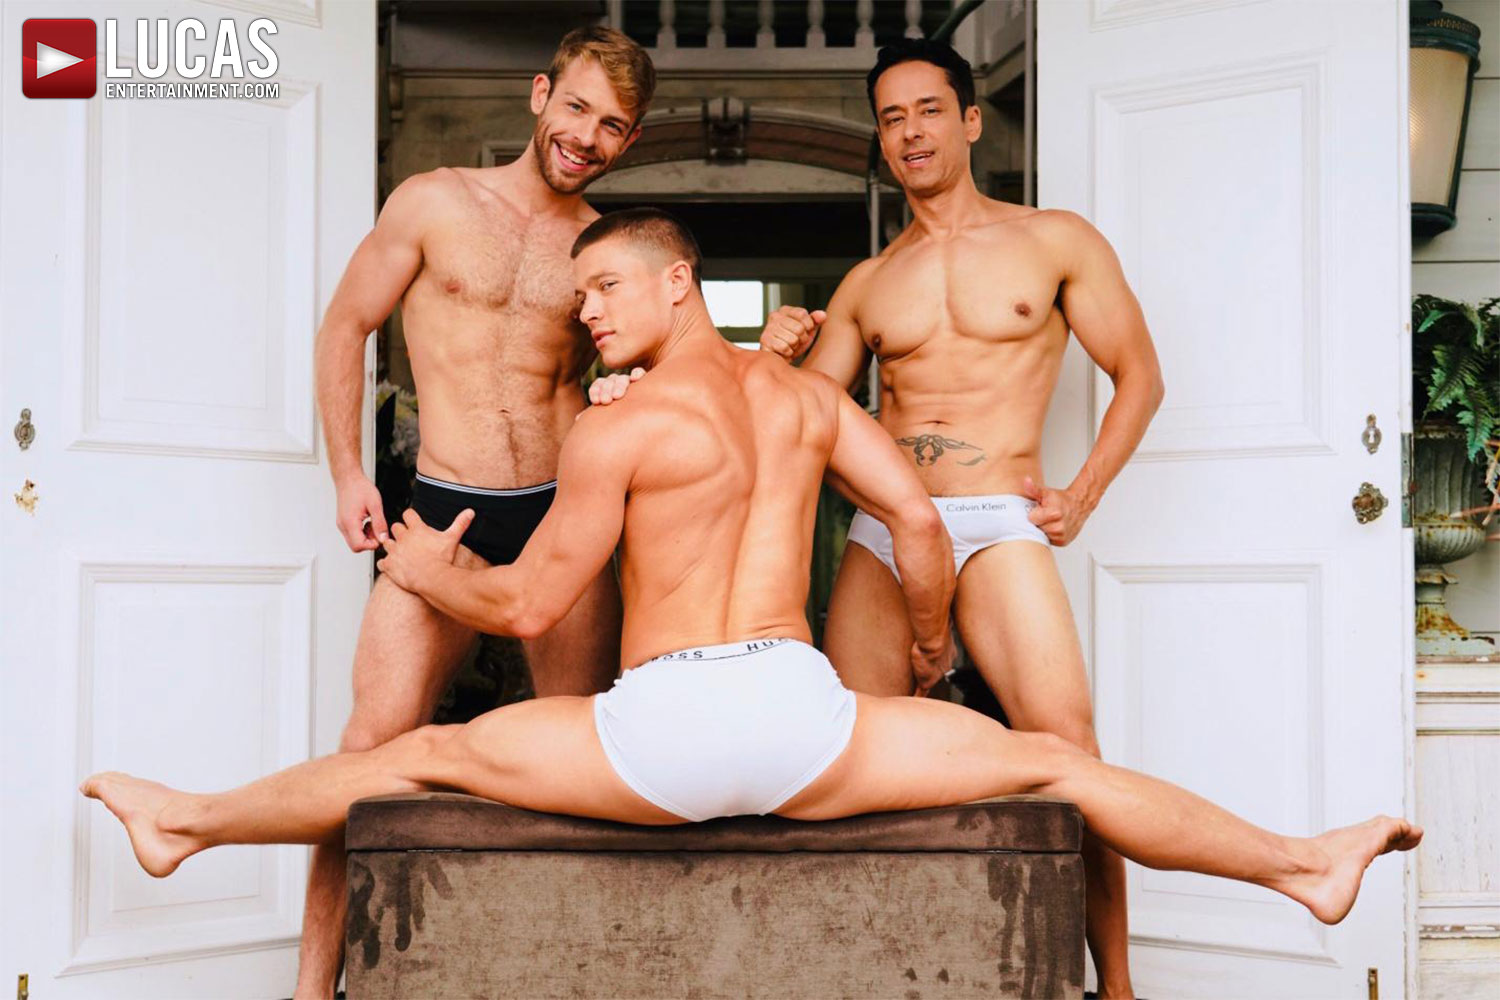 Rafael Alencar, Ruslan Angelo, And More Filming On Fire Island